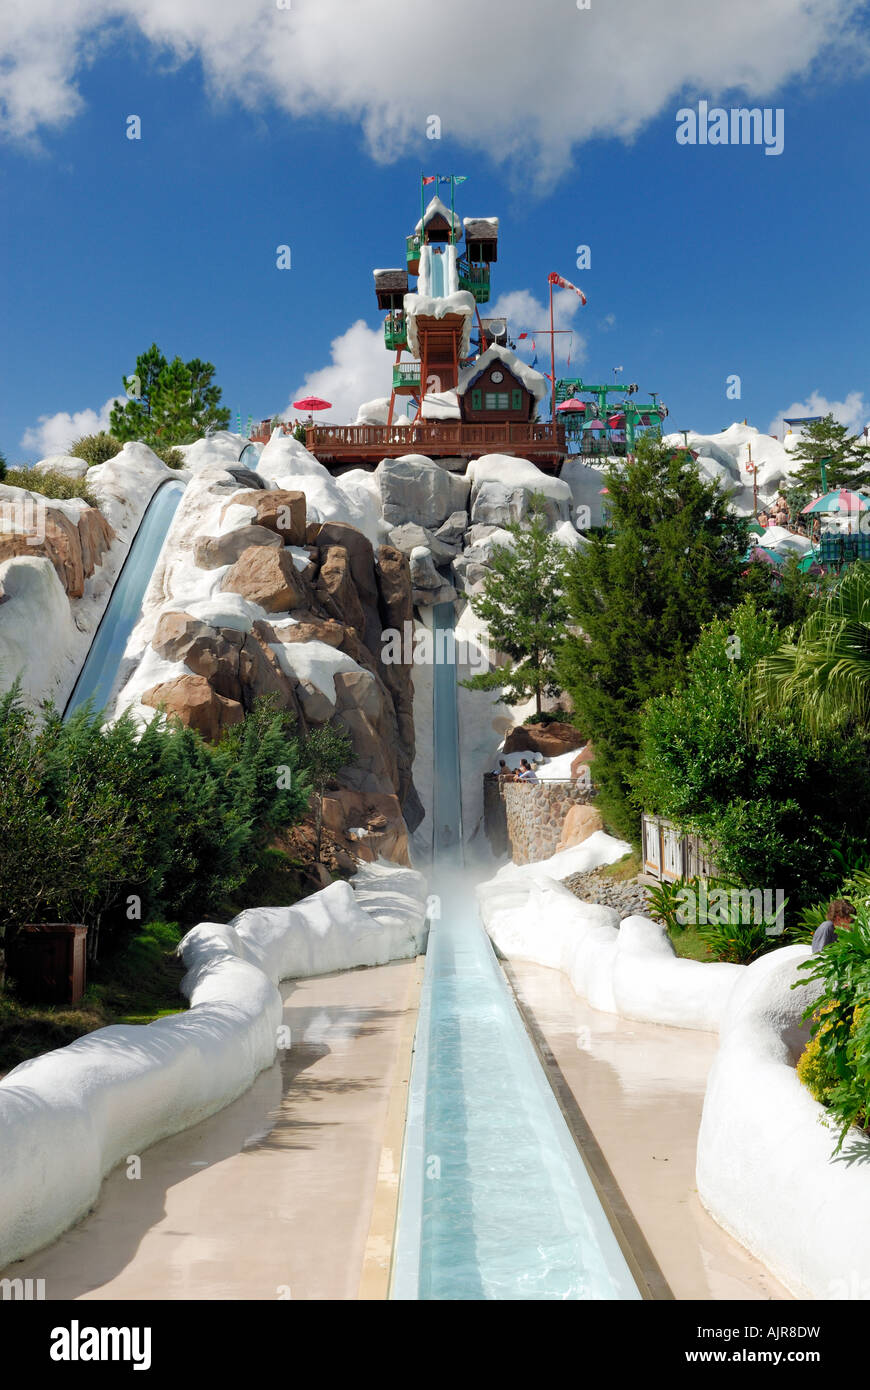 A View Of The Water Slides At Blizzard Beach In Orlando Florida Usa